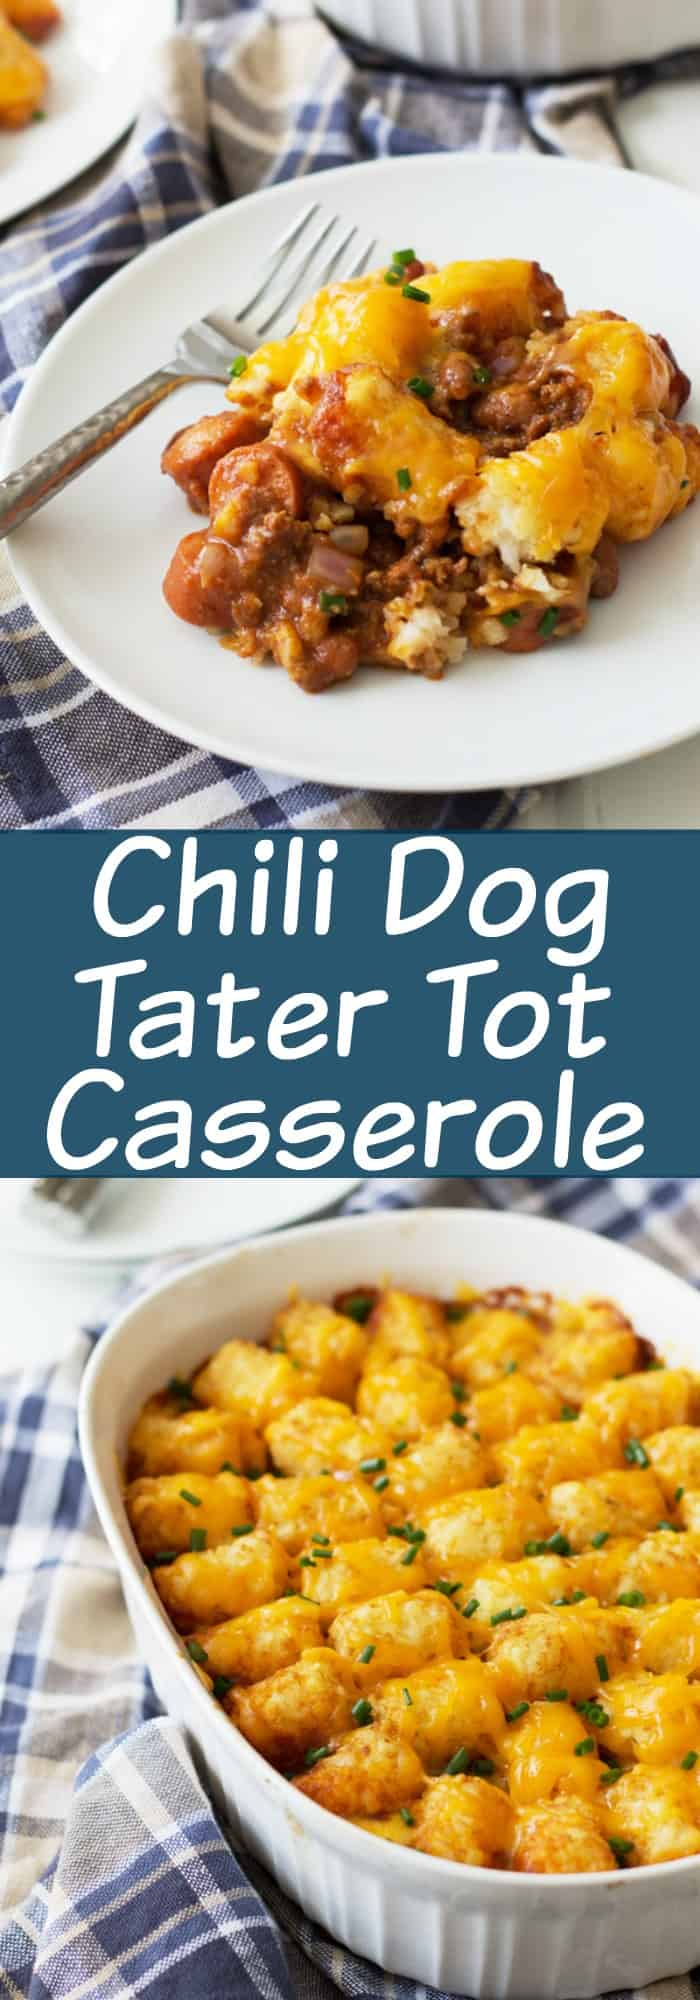 Crockpot Cheeseburger Casserole - The great taste of cheeseburgers in an easy crockpot recipe, plus a hidden veggie for extra nutritional impact!